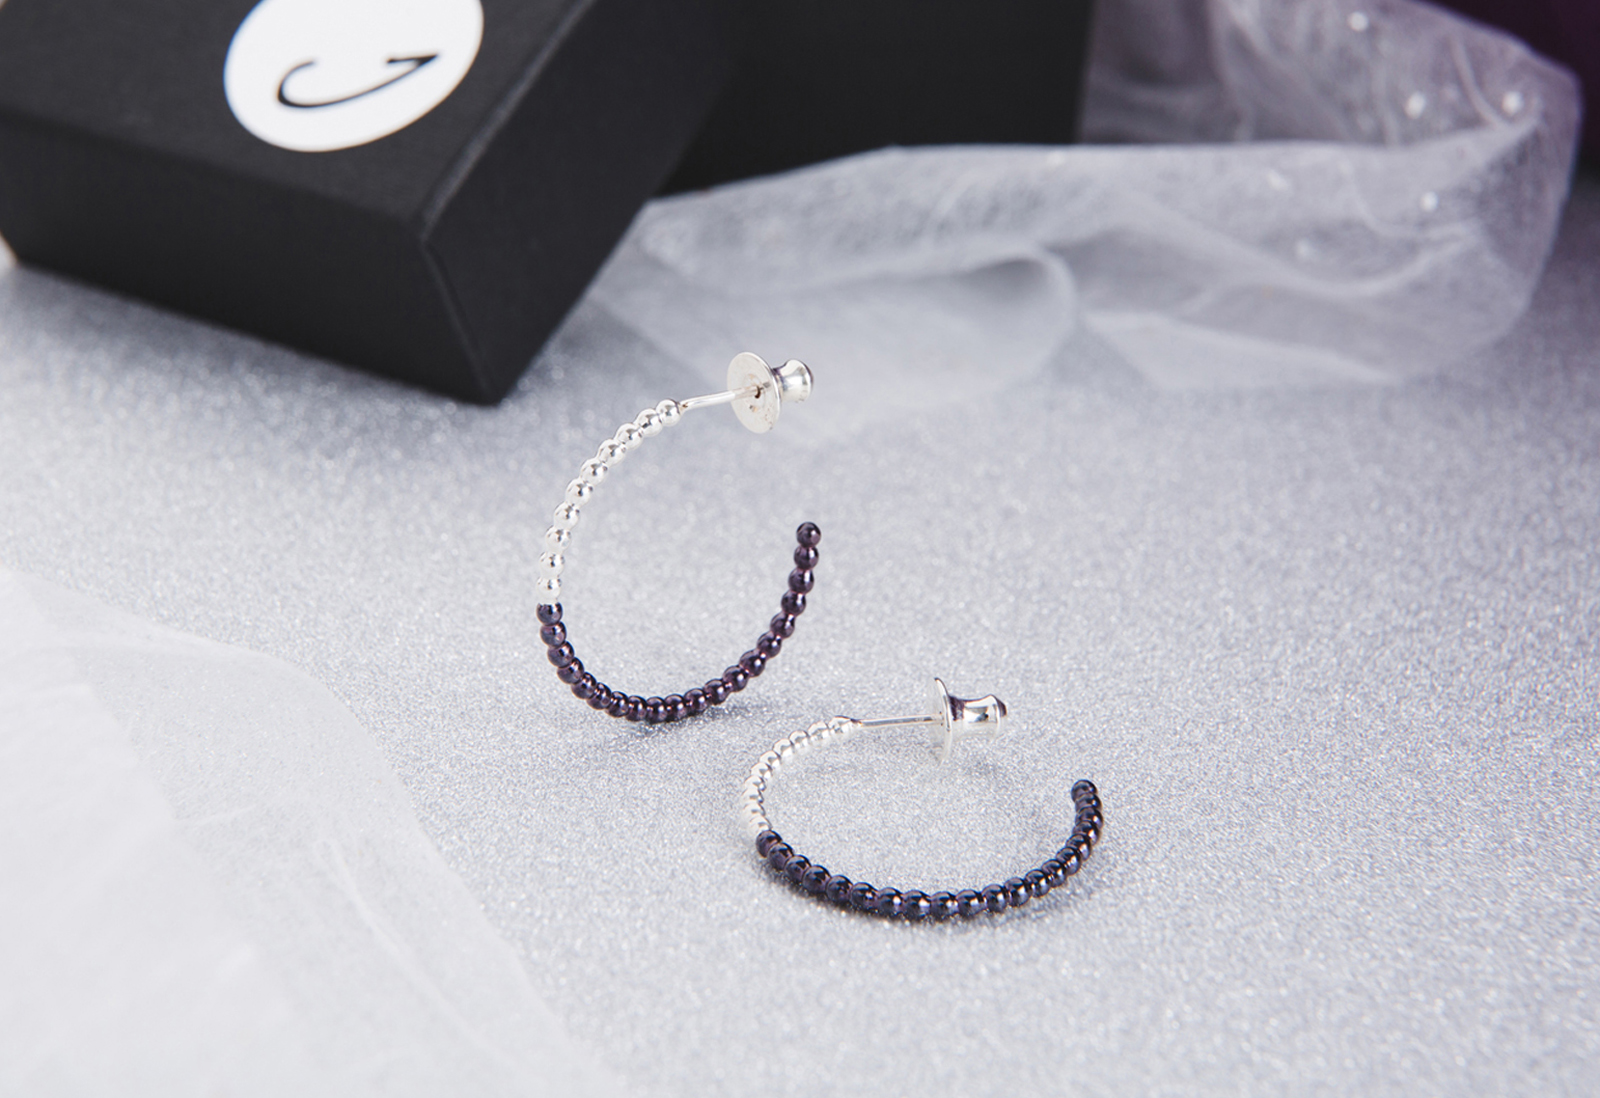 Judith Peterhoff Jewellery - BoulBoulle Two-tone Handmade Small Hoop Earrings in Silver and Purple Rhodium